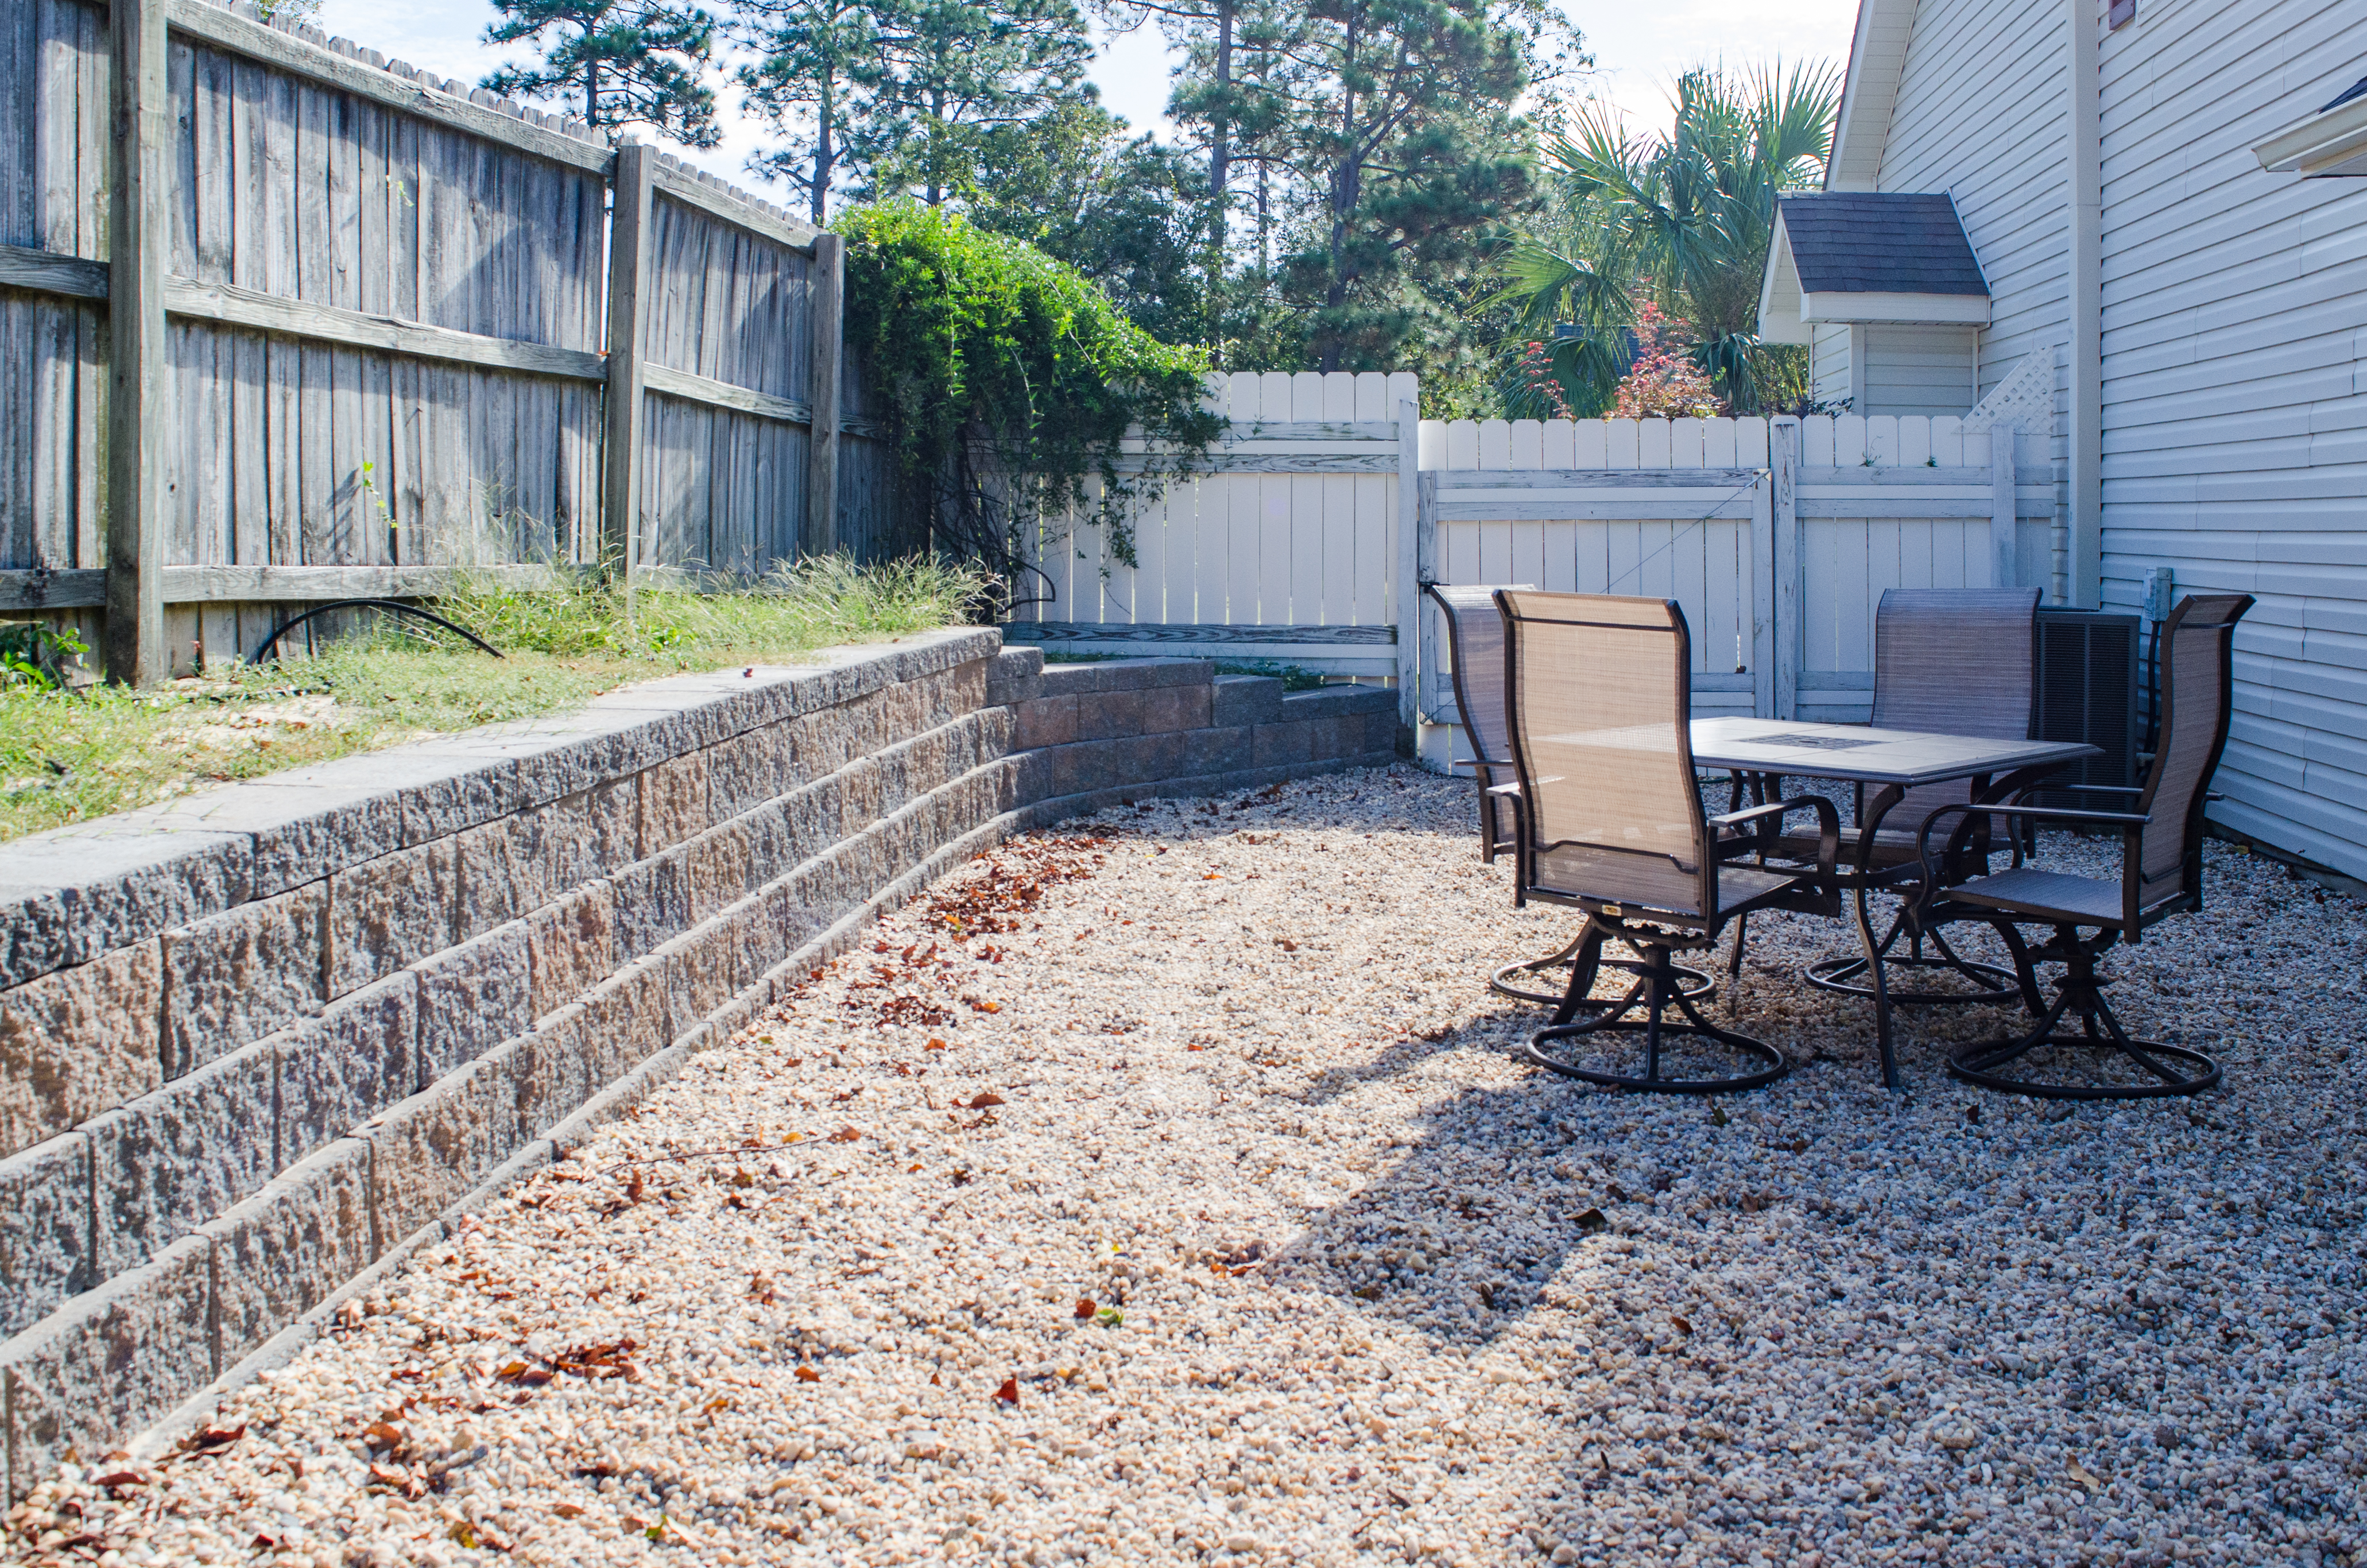 Erosion Protection for a Sloped Backyard   Landscaping ... on Retaining Wall Ideas For Sloped Backyard id=45152